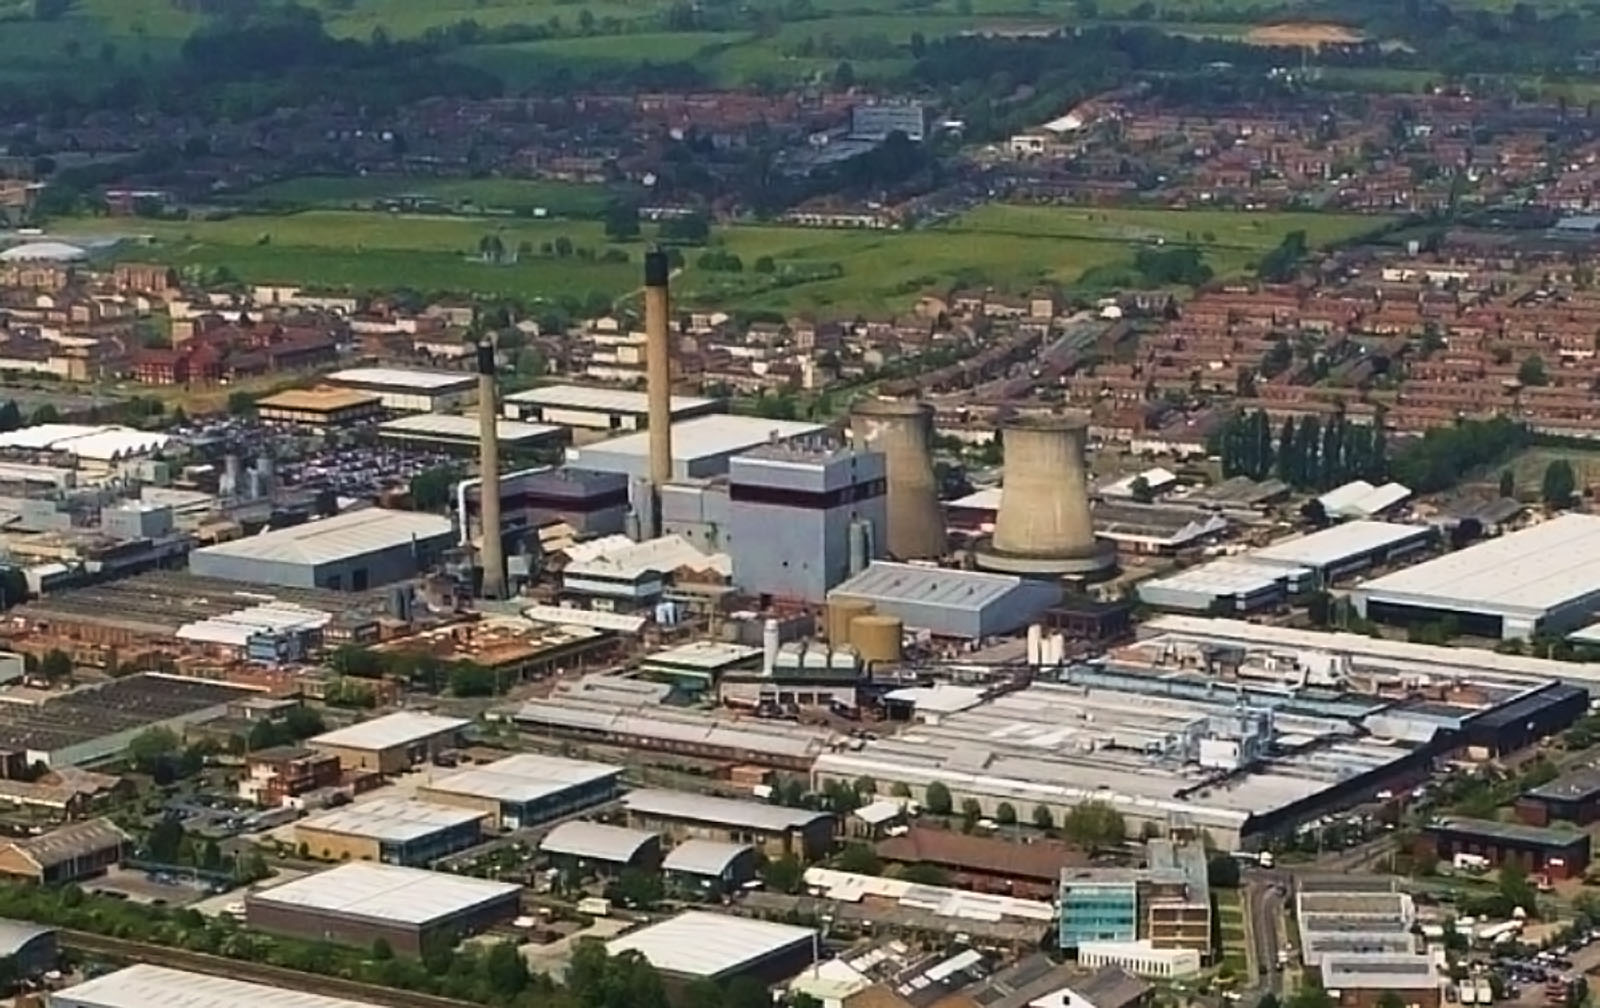 Aerial View of Slough Trading Estate.